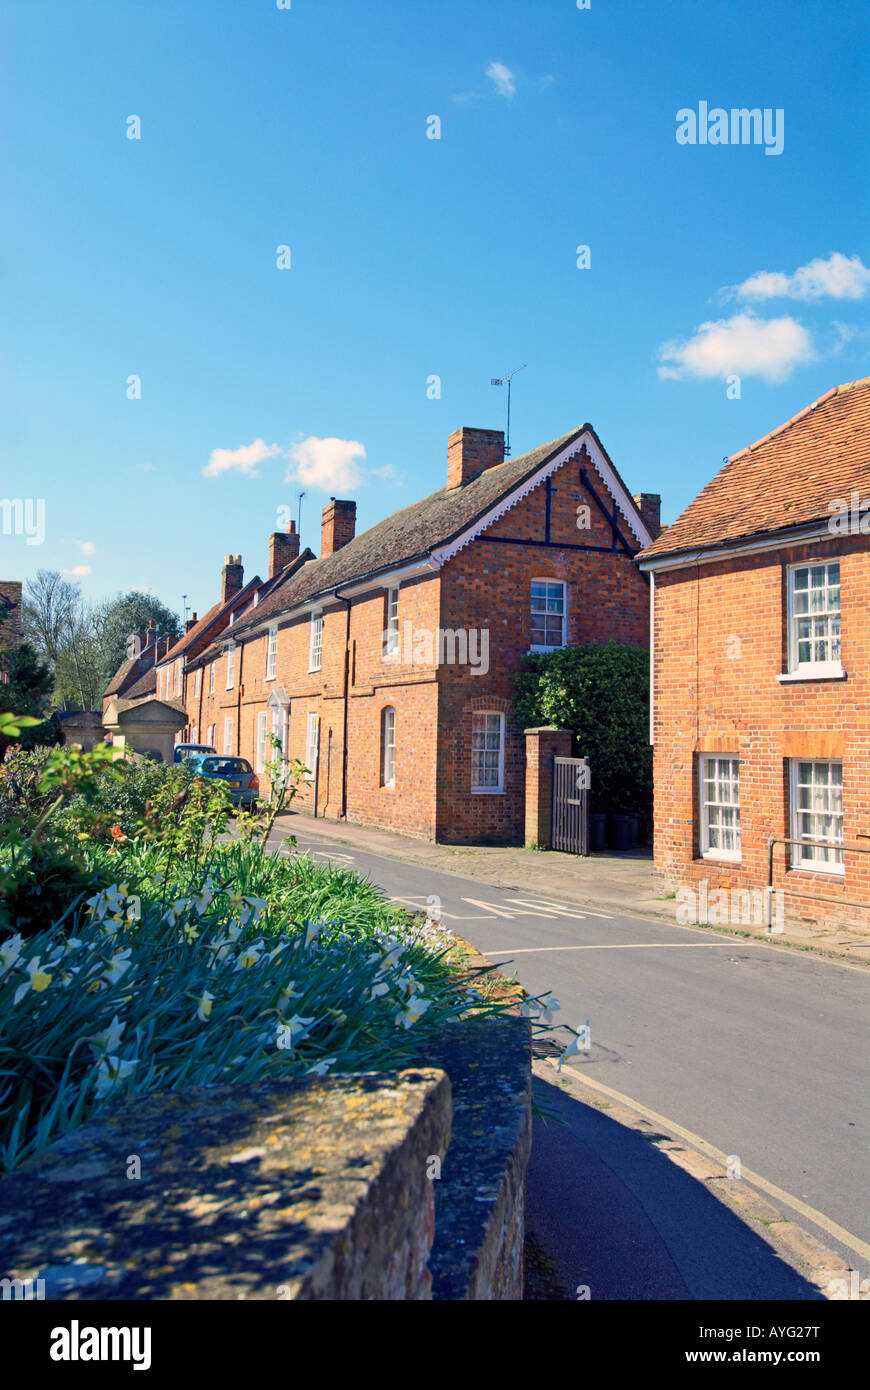 Terraced Cottages in Priory Road, Wantage, Oxfordshire, England - Stock Image